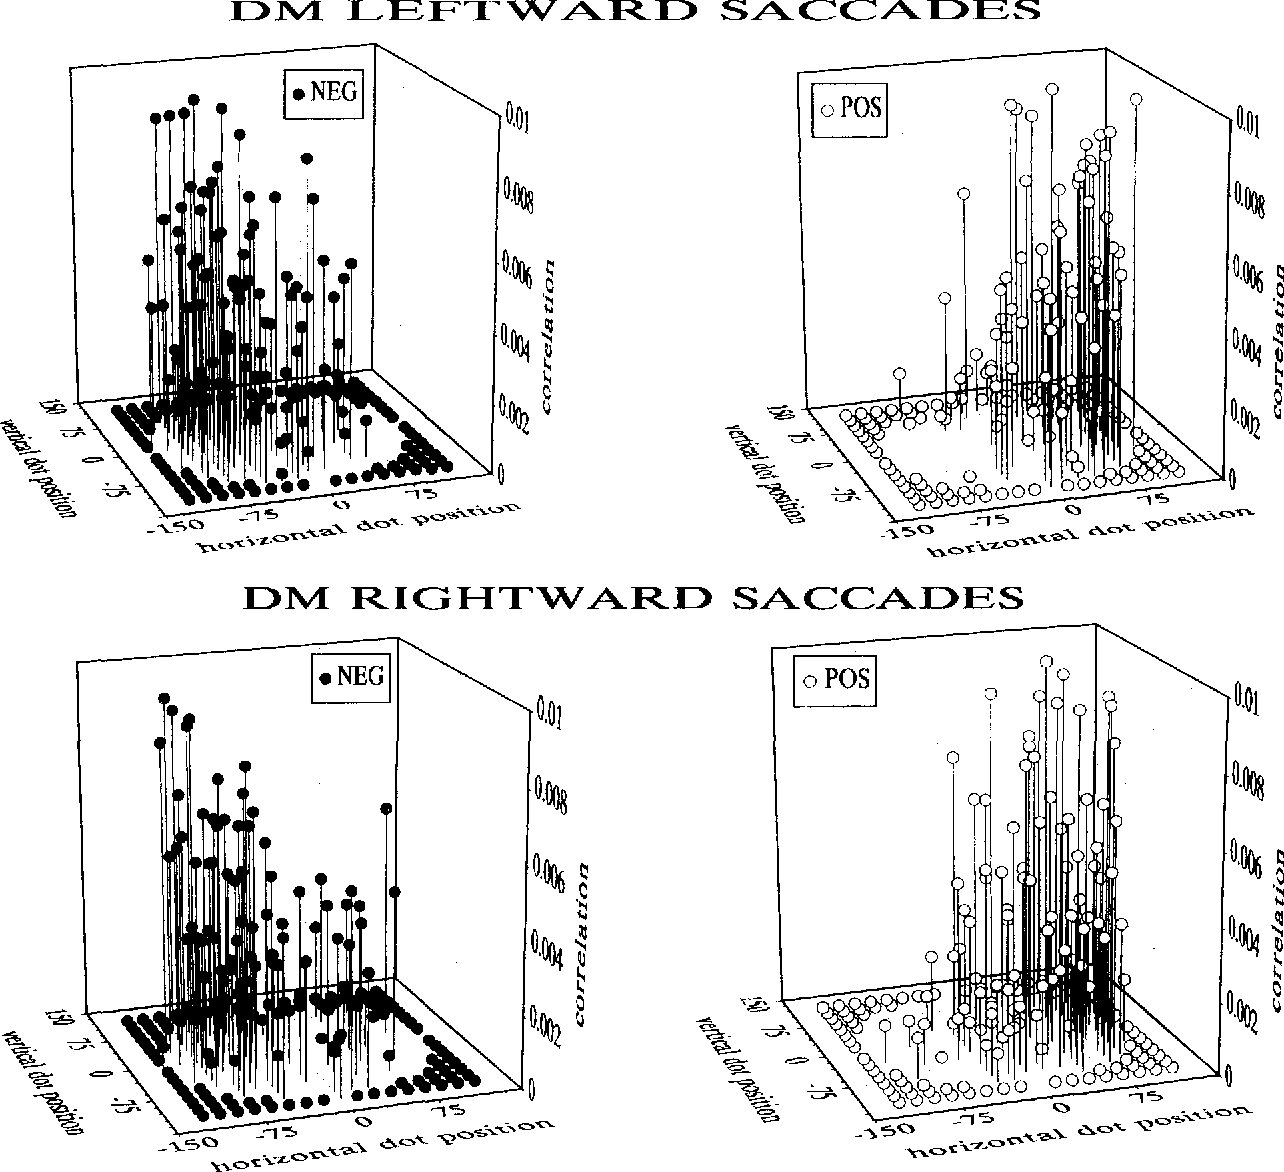 FIGURE 7. Correlations between the presence of a dot in each possible position within the target region and the landing position of the saccade for DM's leftward and rightward saccades. Dot position is denoted by the position of the symbol along the horizontal and vertical axes at the bottom of each graph. The magnitude of the correlation is denoted by the height of the symbol. Negative correlations (left-hand graphs) indicate that the presence of a dot displaced the saccadic landing position to the left, and positive correlations (right-hand graphs) to the right, of the mean saccadic landing position.